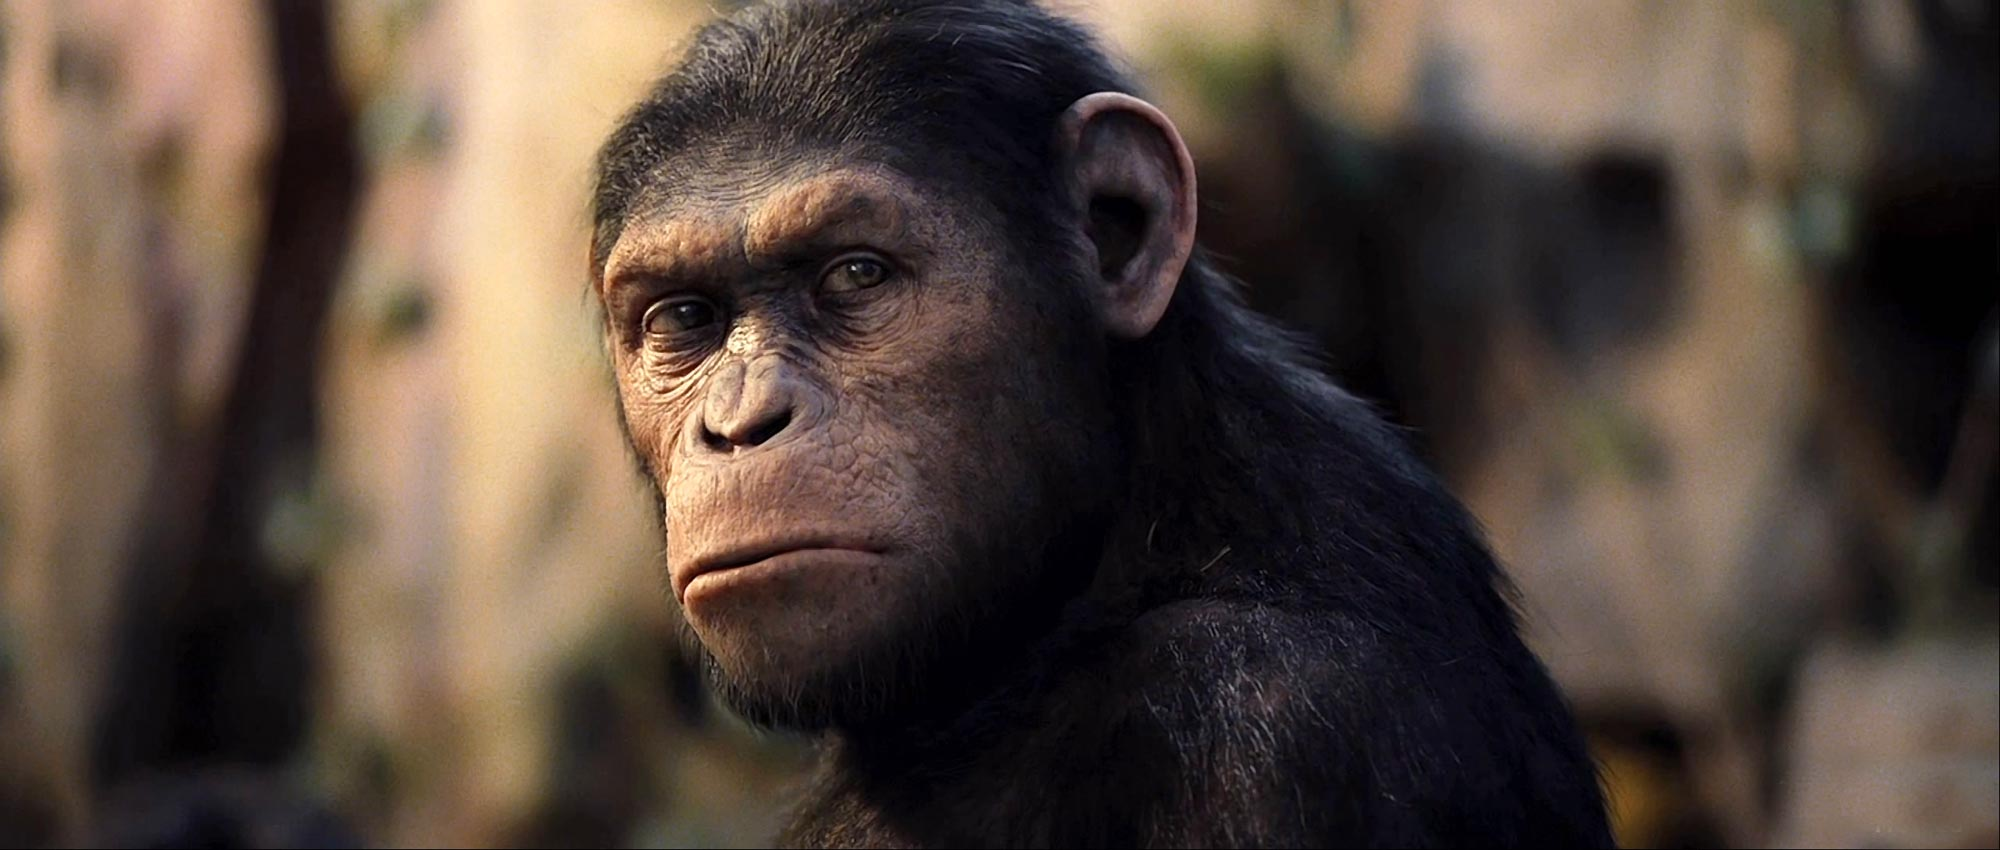 Movie Review: Rise of the Planet of the Apes | The Book ...